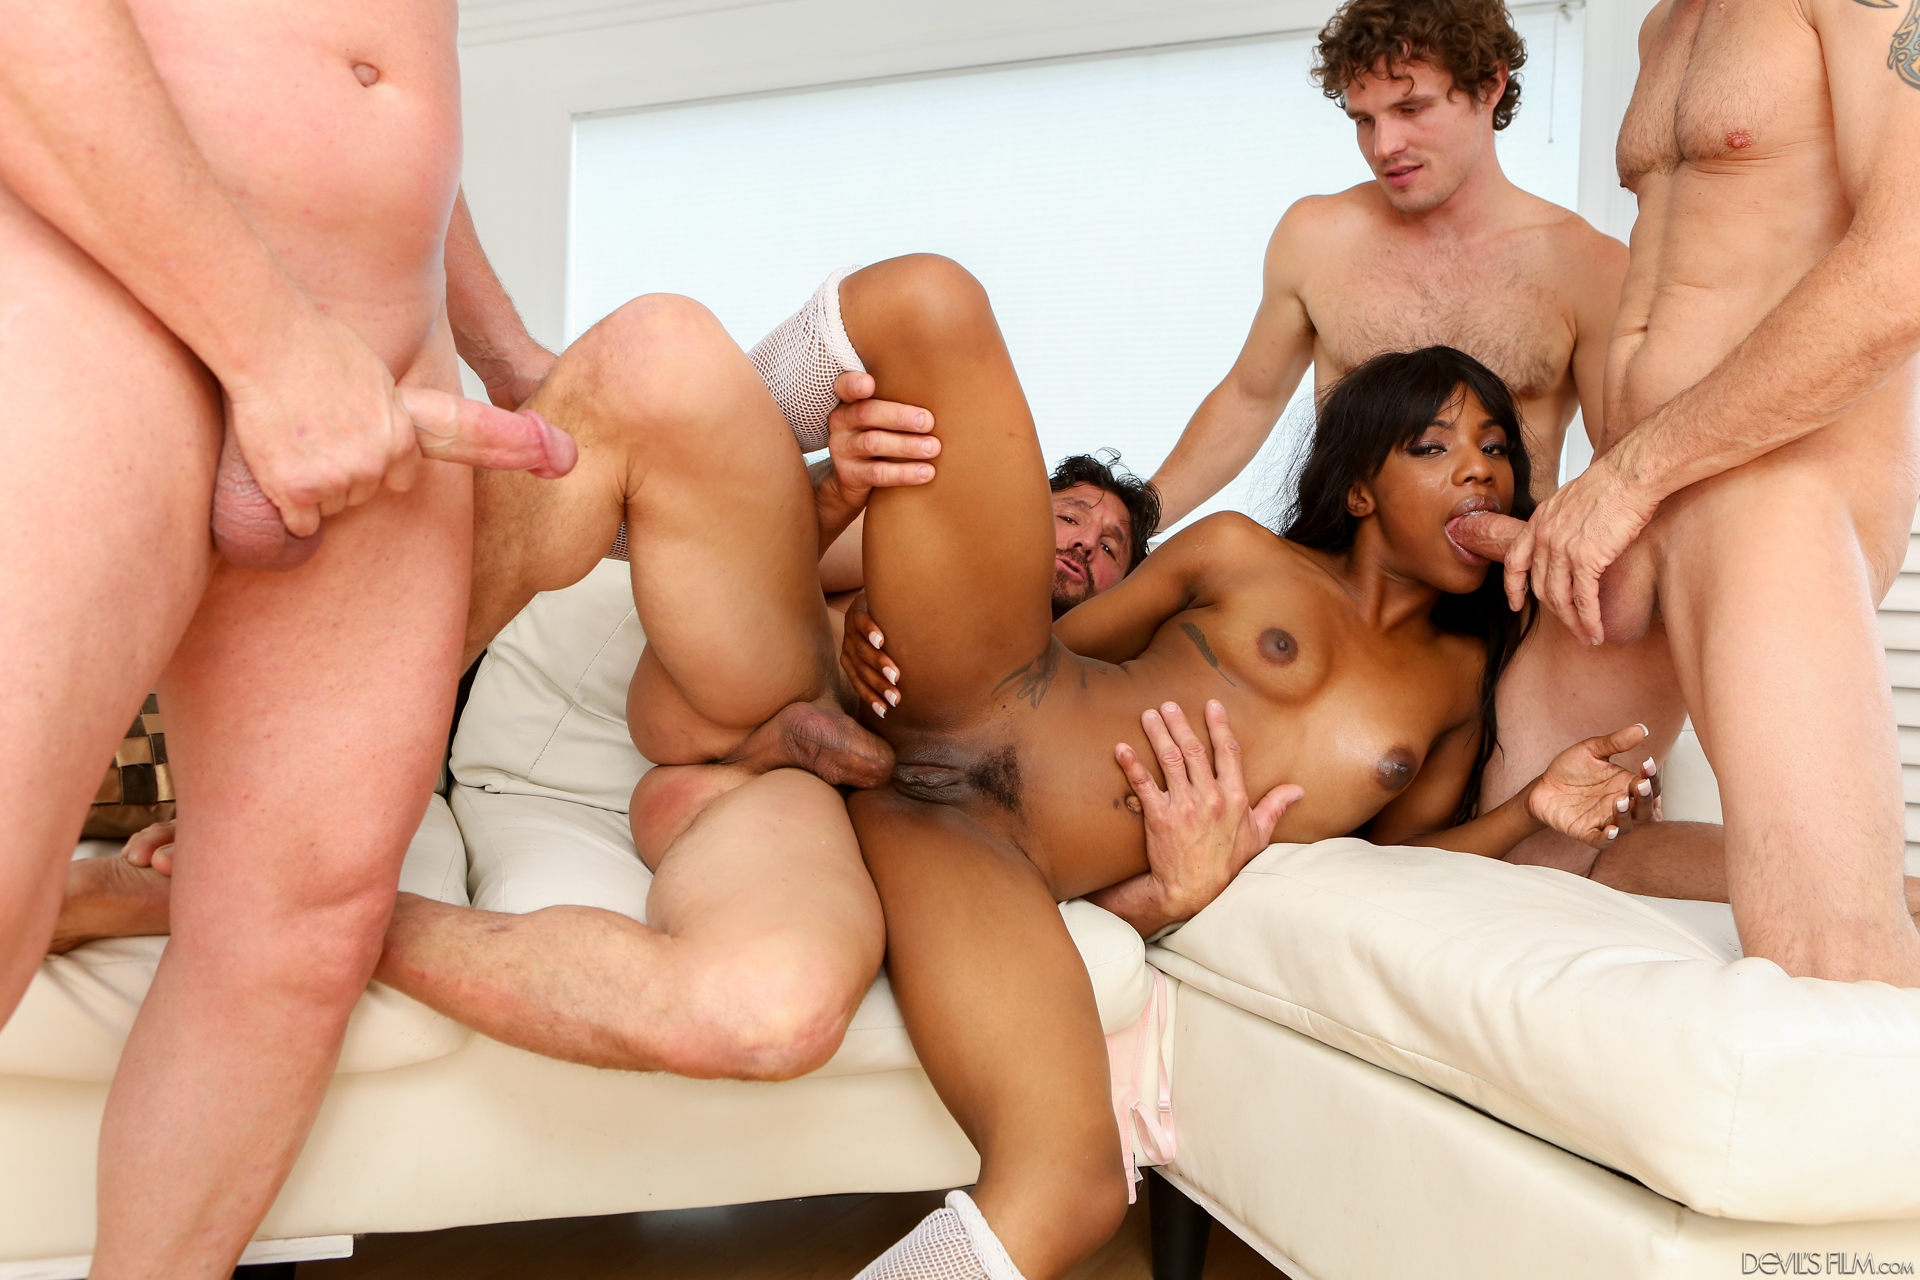 Detailed sex two men fuck one women scene